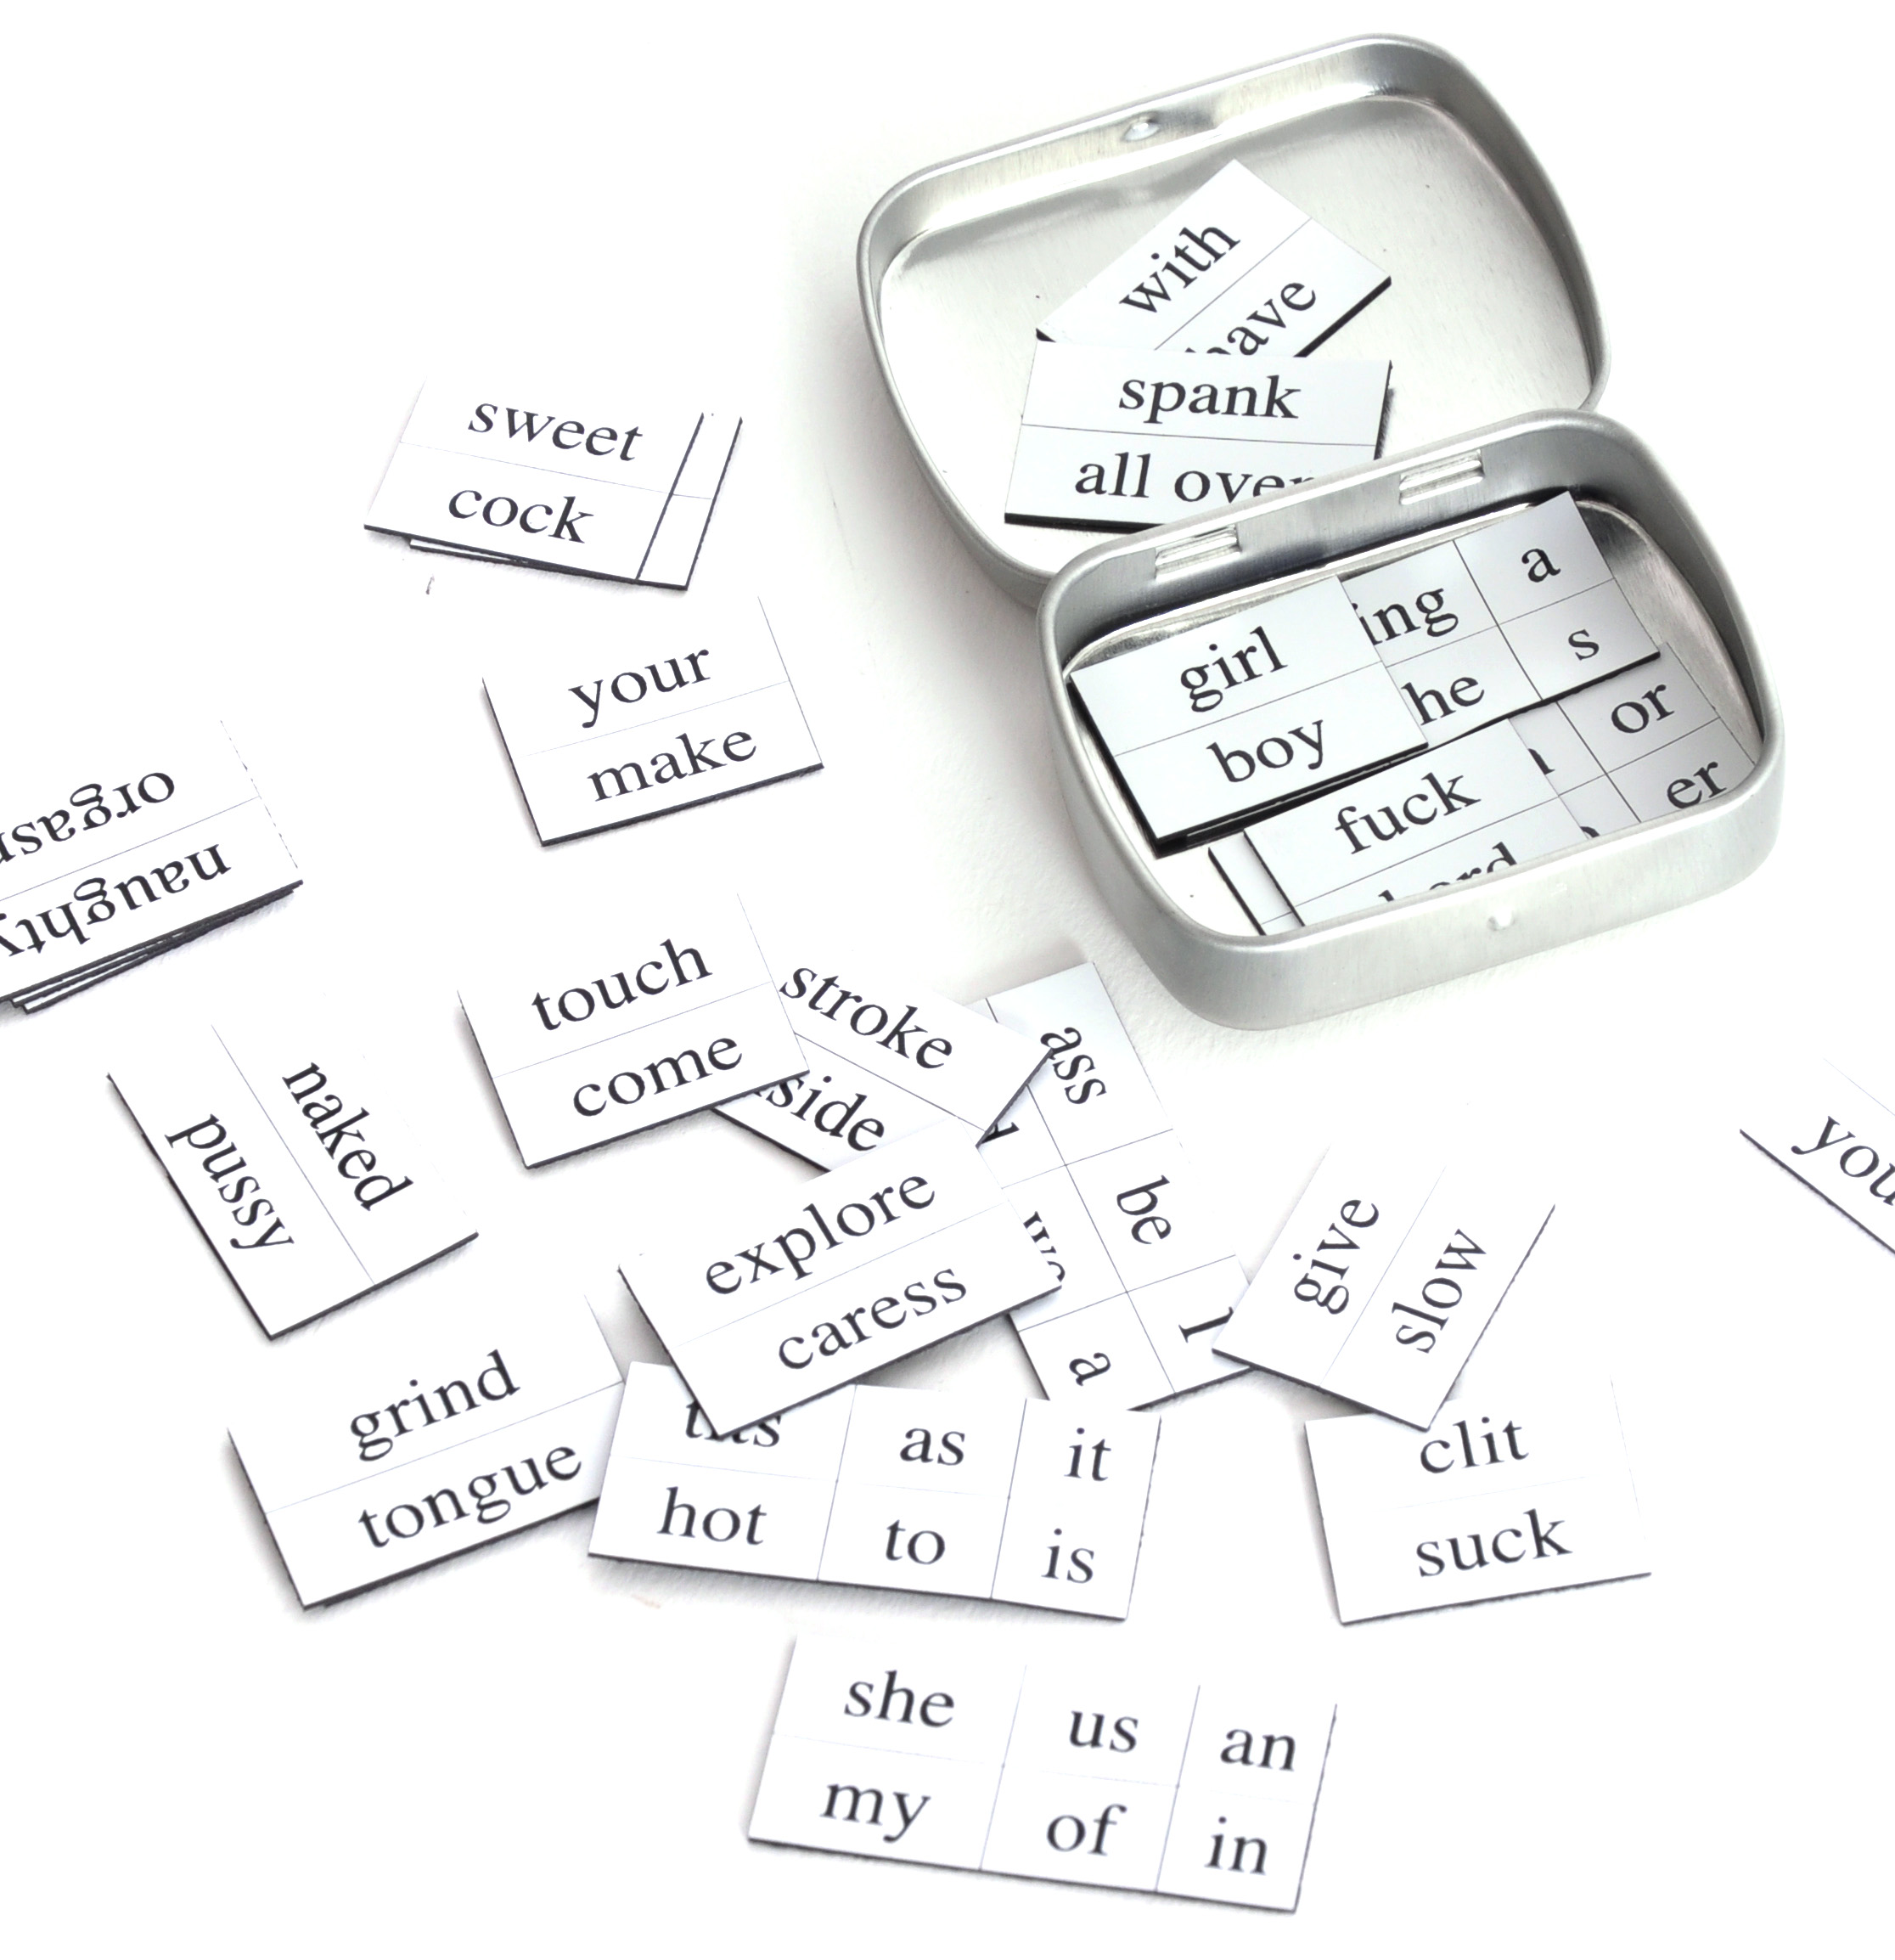 Erotic magnetic poetry